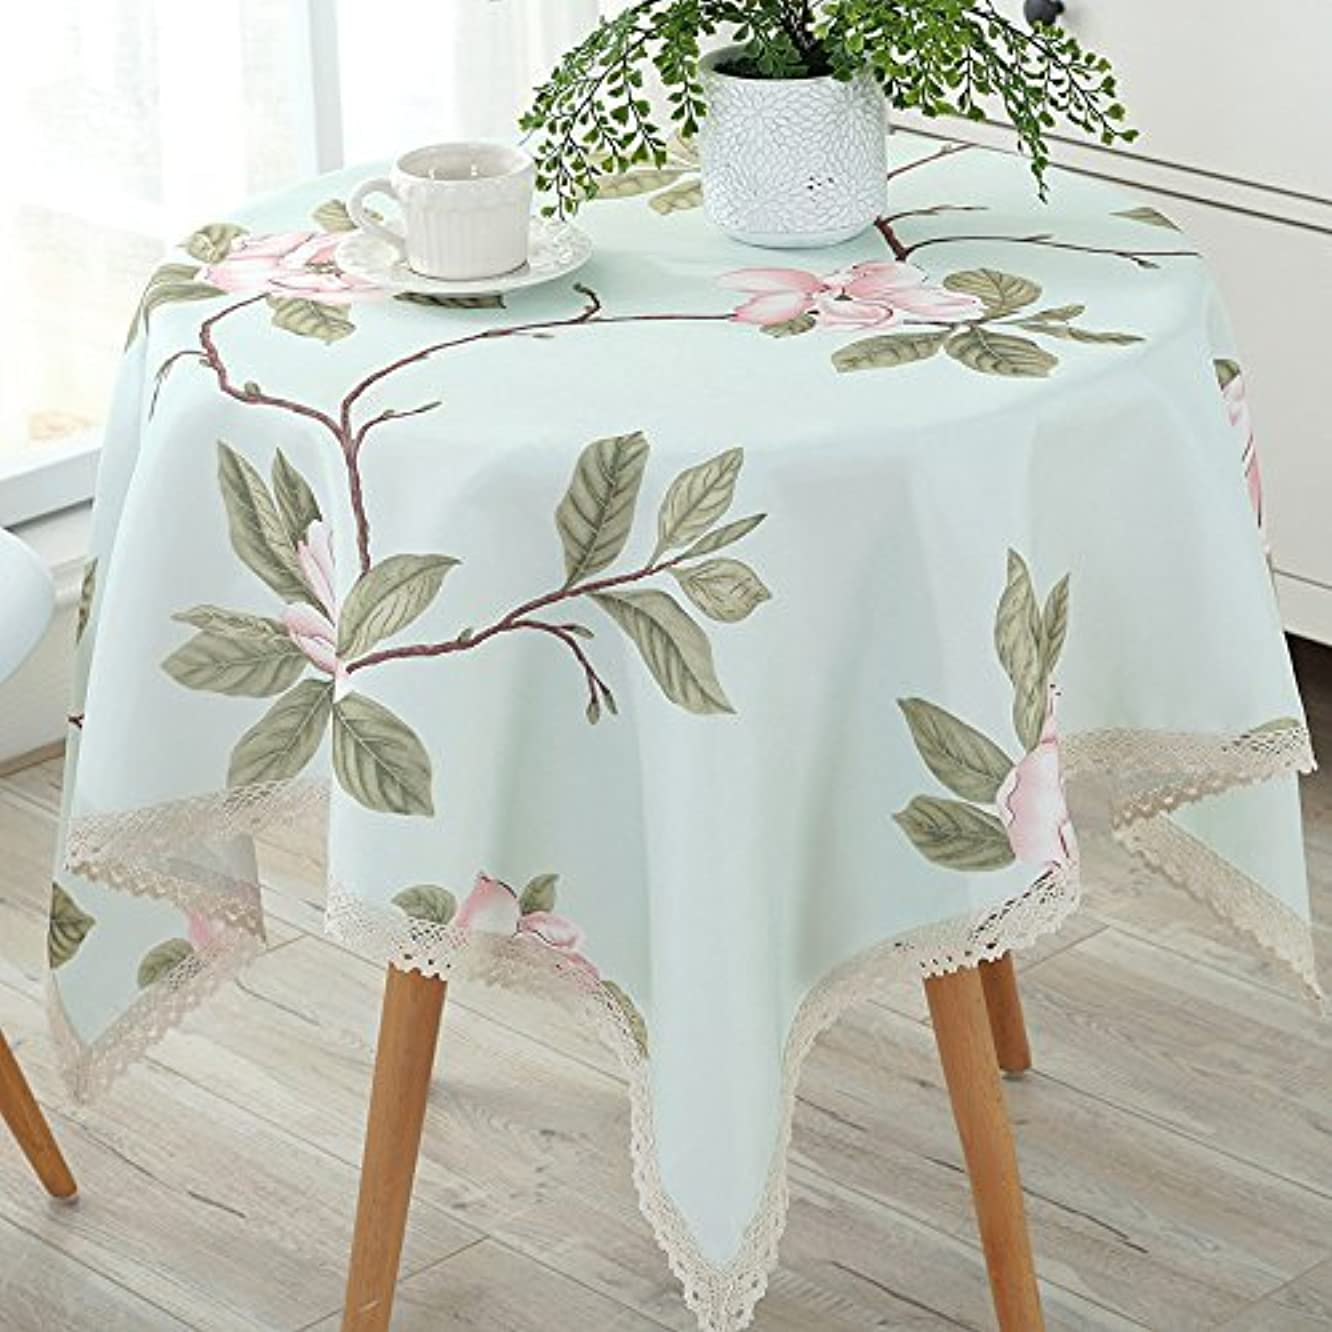 MOMO Waterproof and Anti Hot Oil Cloth Cotton Cloth round round Table Disposable Tablecloth